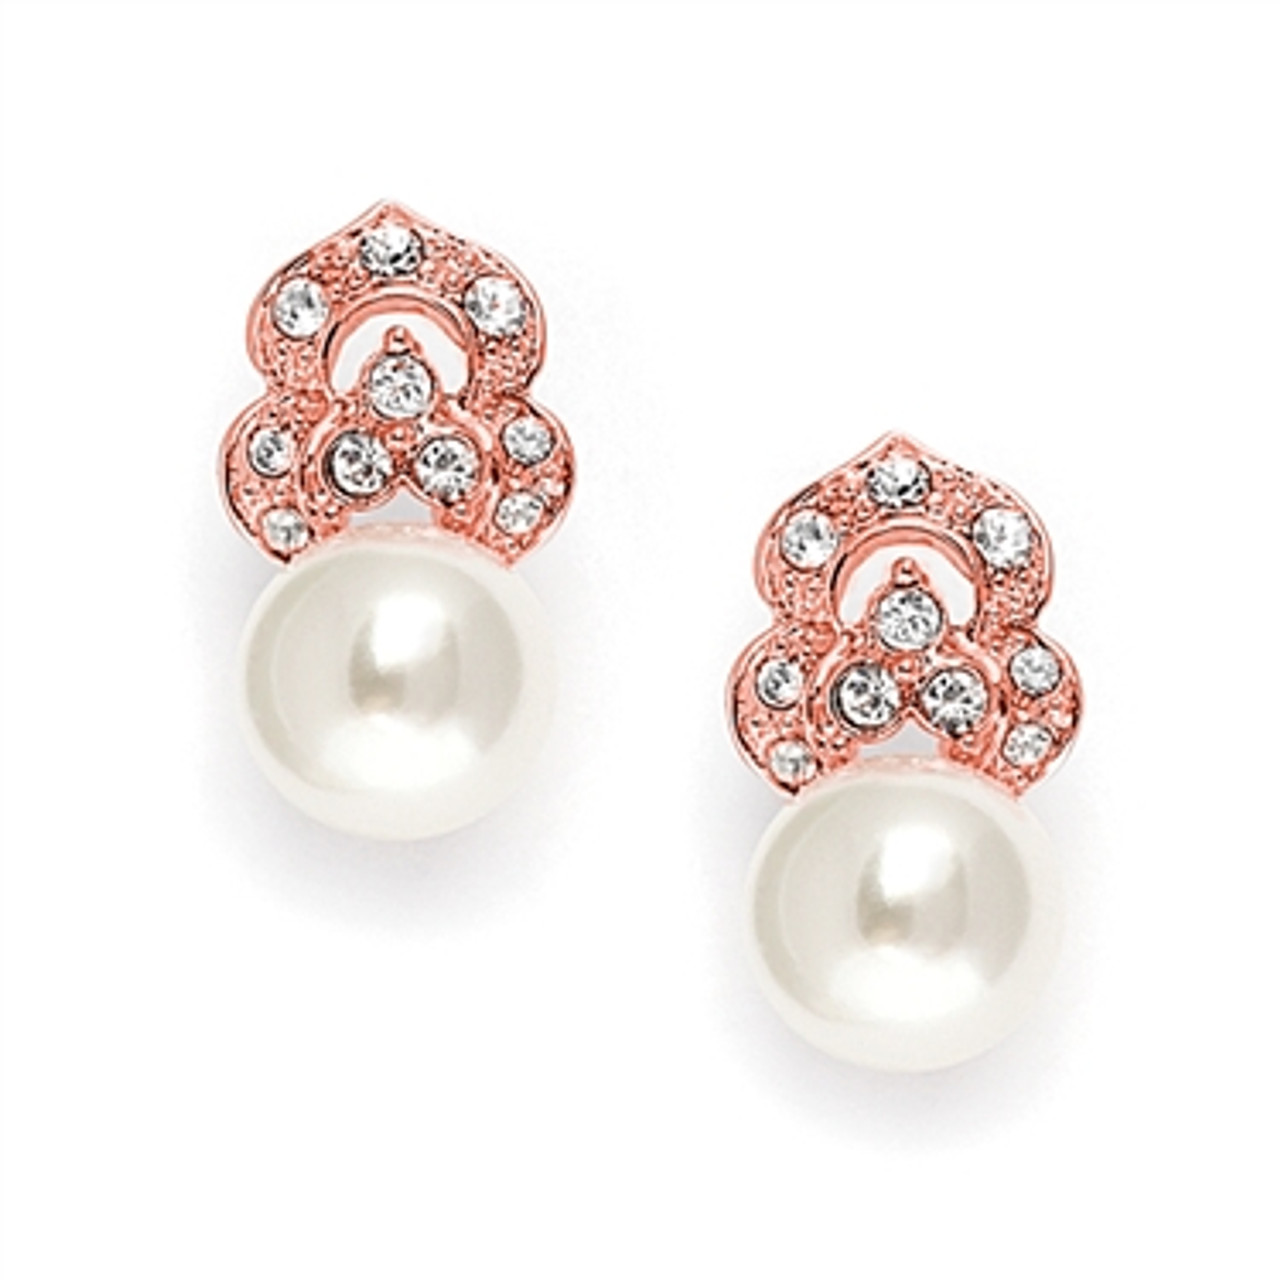 Rose Gold Cubic Zirconia & Soft Cream Pearl Vintage Wedding Earrings in Rose Gold 3827E-RG